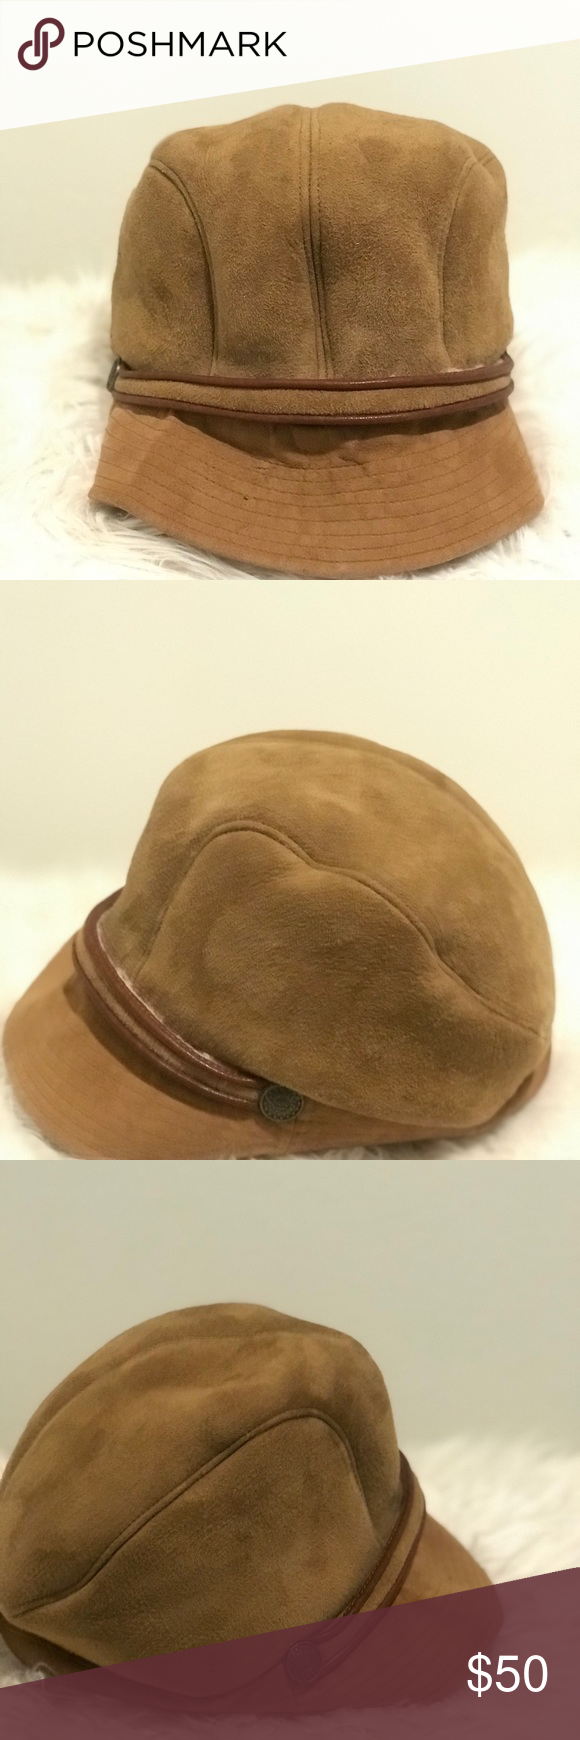 Ugg News Boy Style unisex Hat Ugg news boy unisex hat genuine shearling  sheepskin suede with leather trim- has snaps on back - ugg button on the  each side ... 3fc33328c405